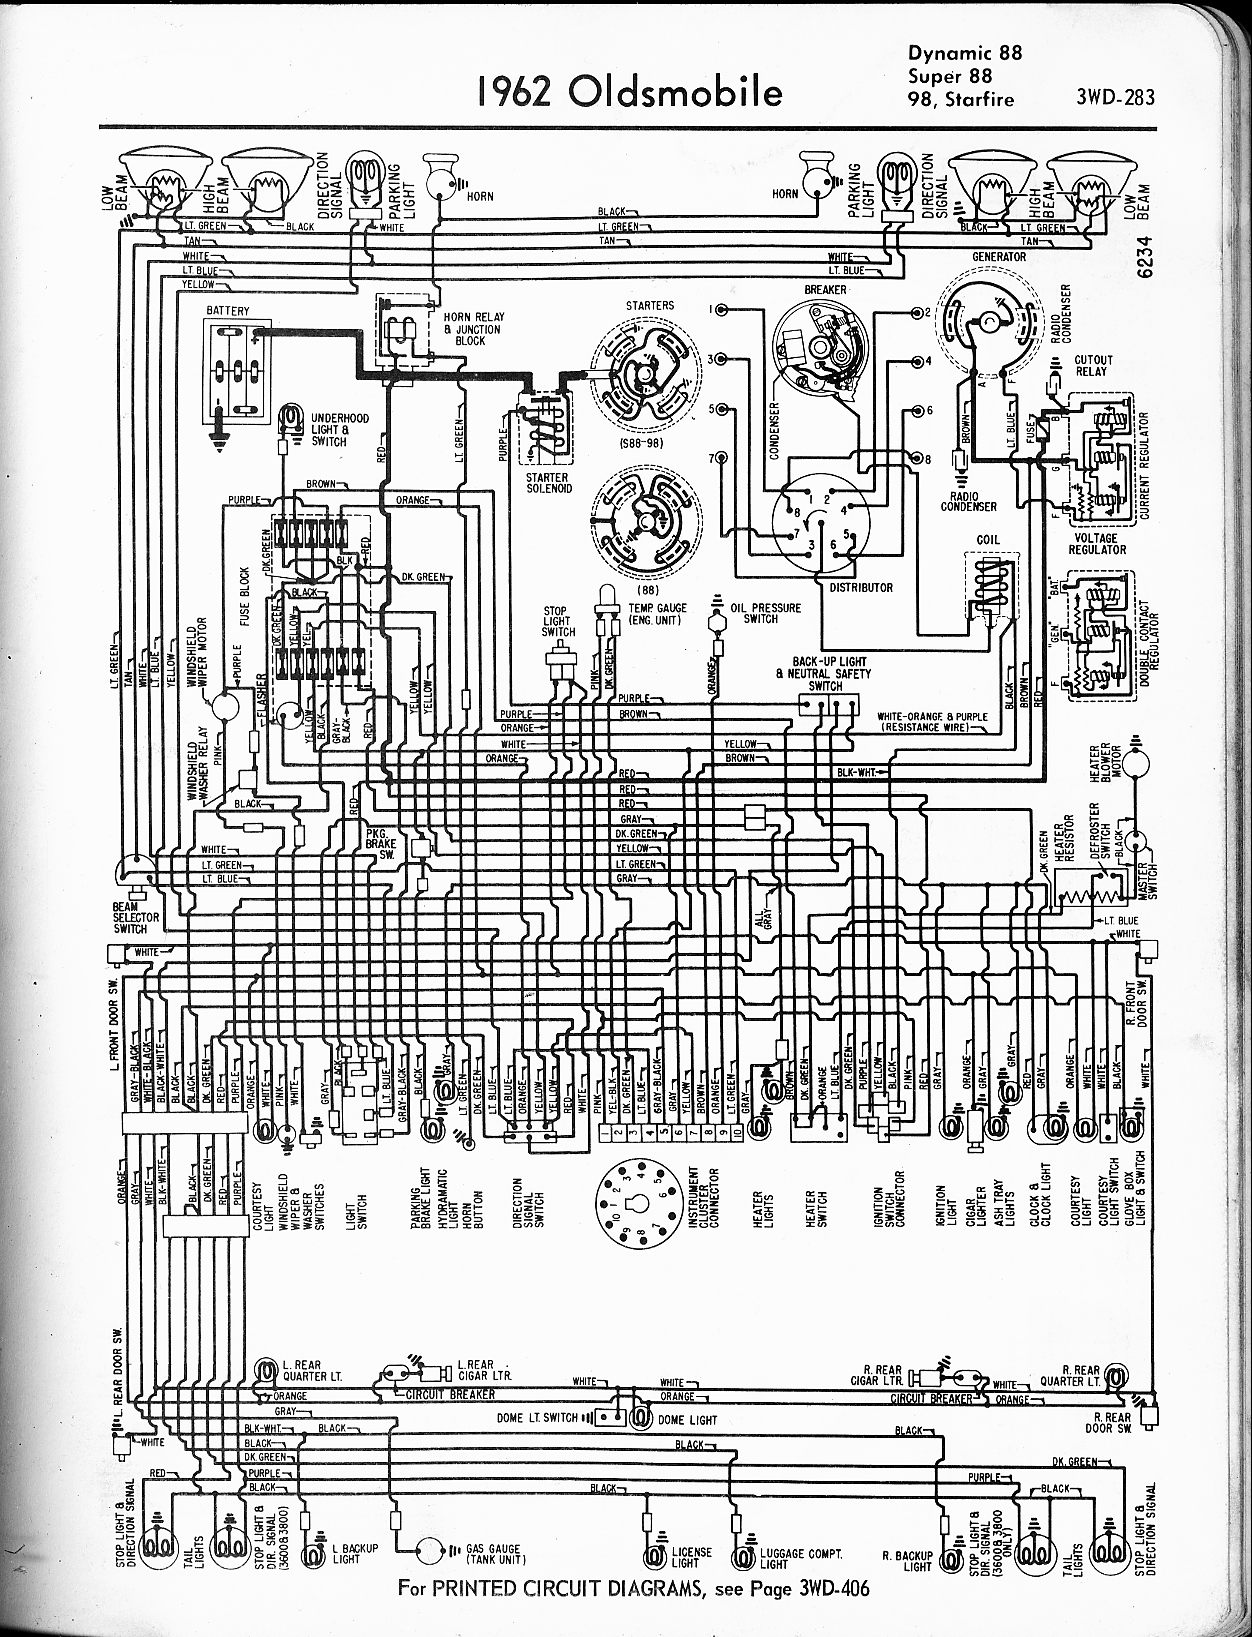 Stereo Wiring Diagram 88 Cutlass Guide And Troubleshooting Of Honda Accord For 99 Oldsmobile Diagrams The Old Car Manual Project Rh Oldcarmanualproject Com Ford